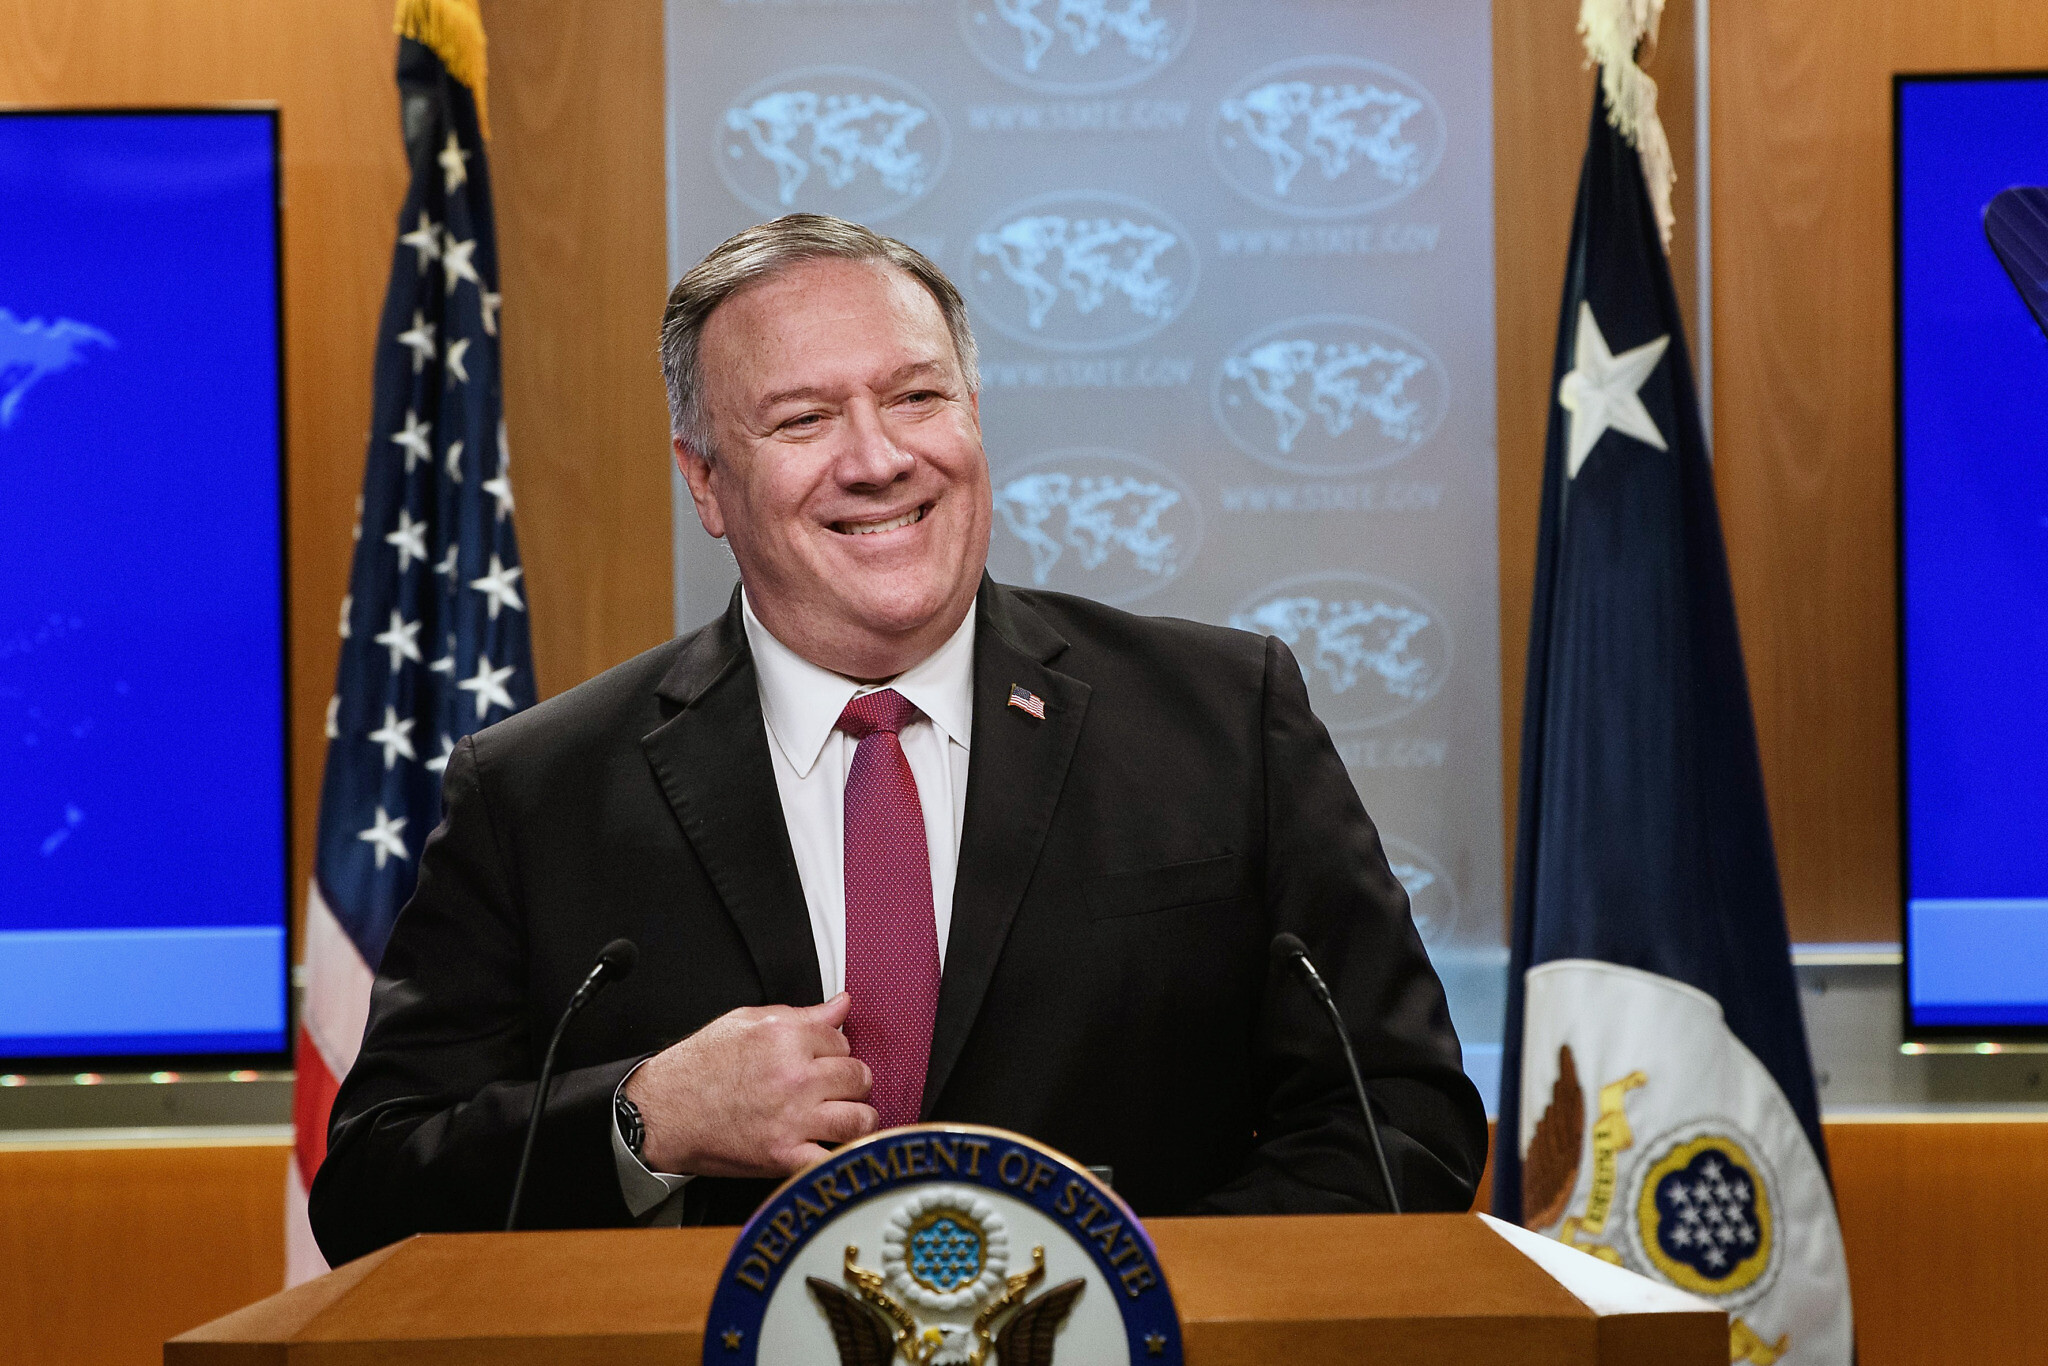 Pompeo heads for Europe, Mideast as Palestinians blast plan to visit settlement   The Times of Israel